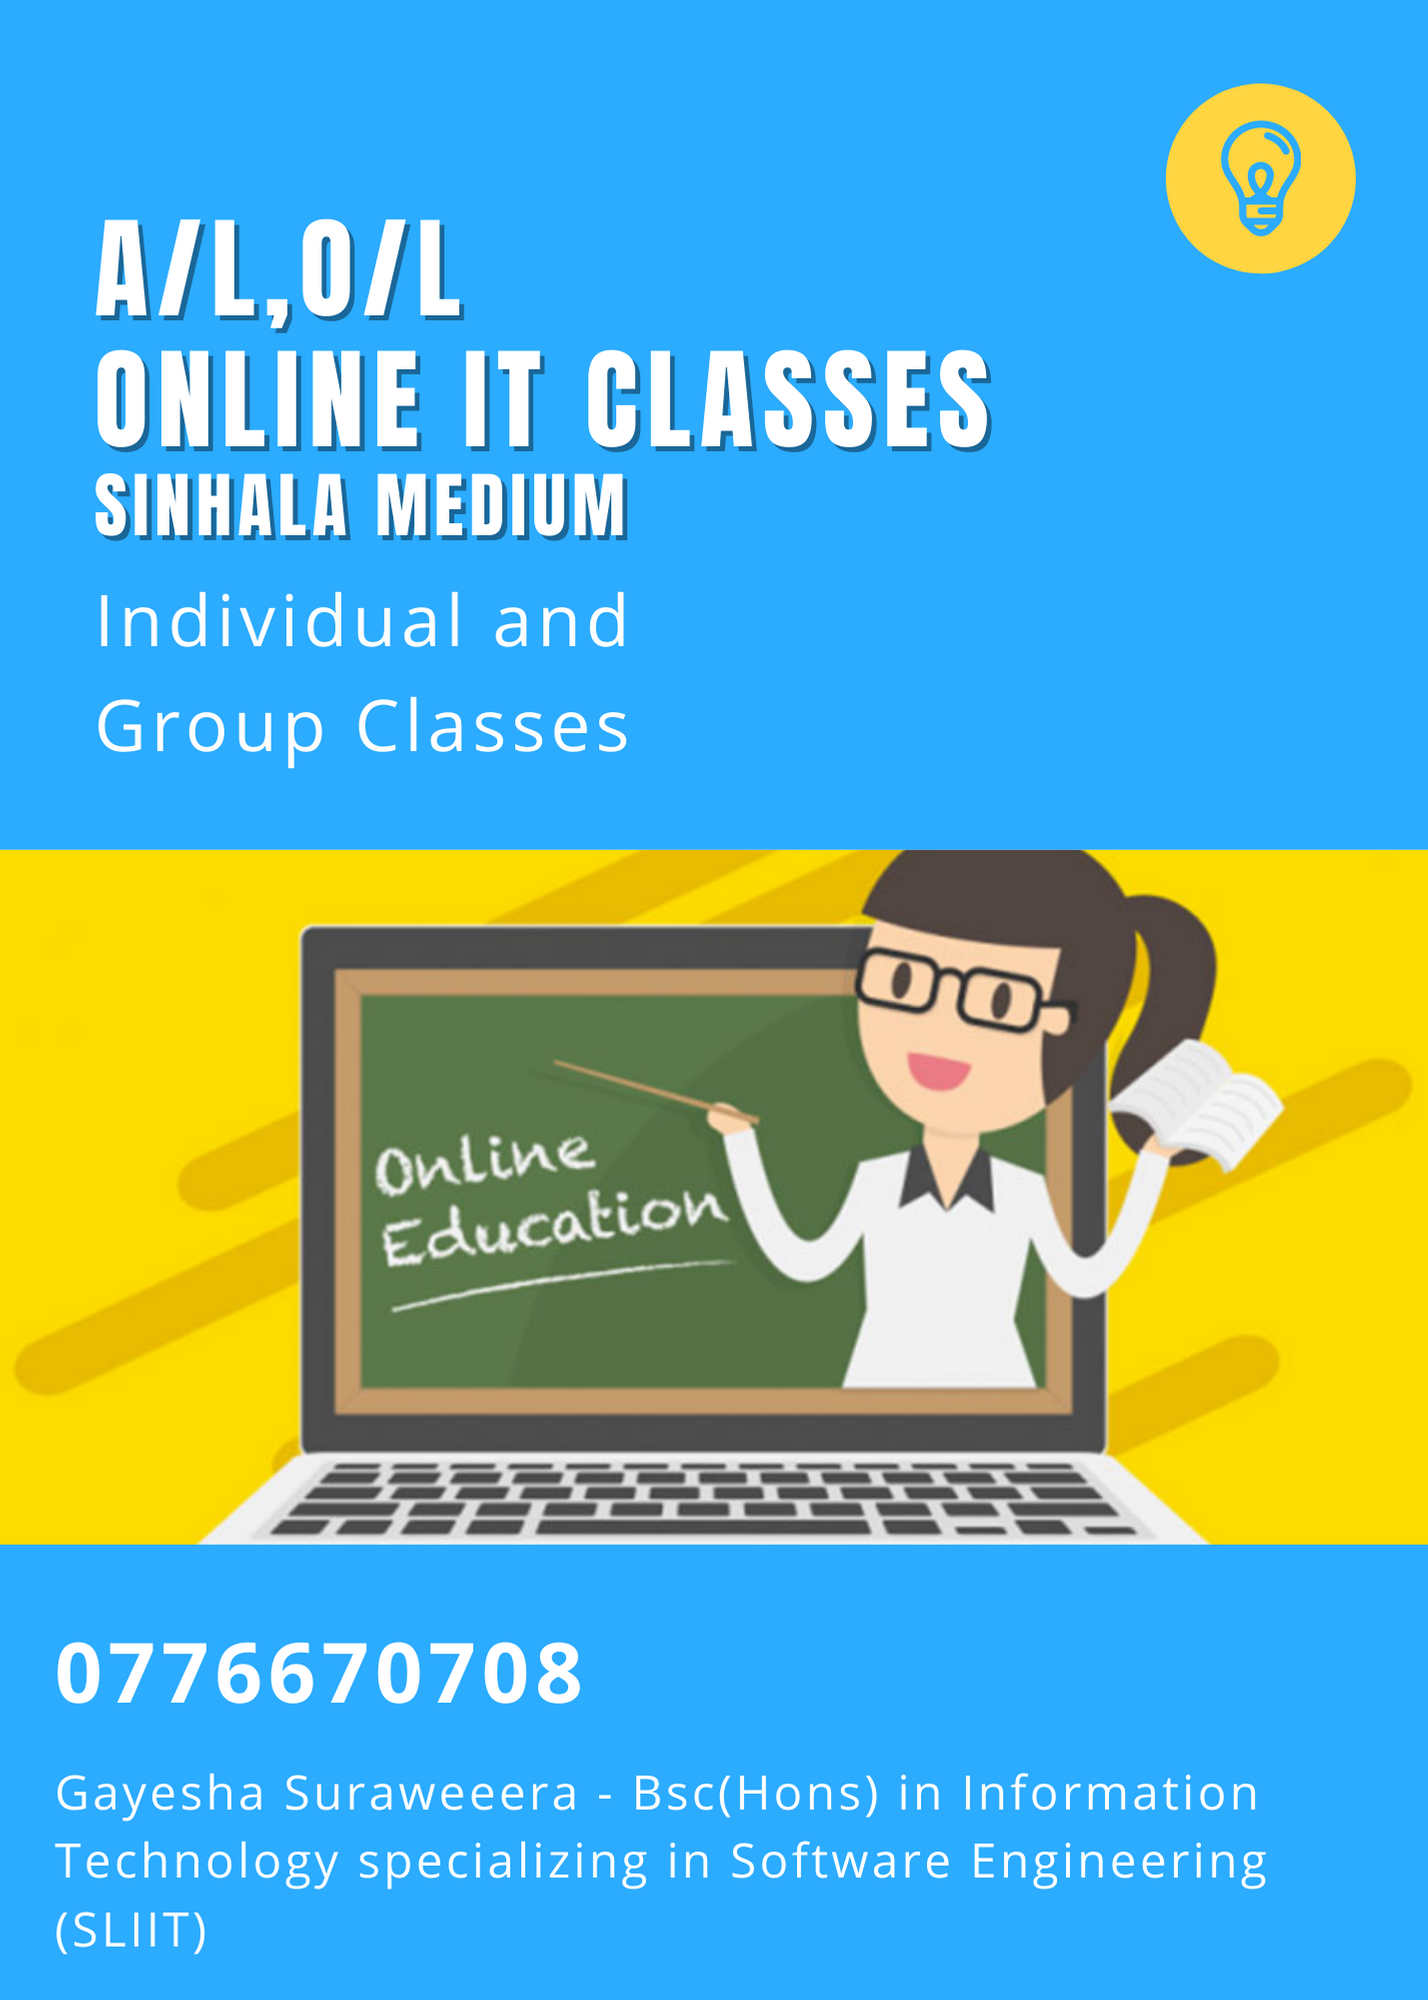 Online IT classes for AL and OL students